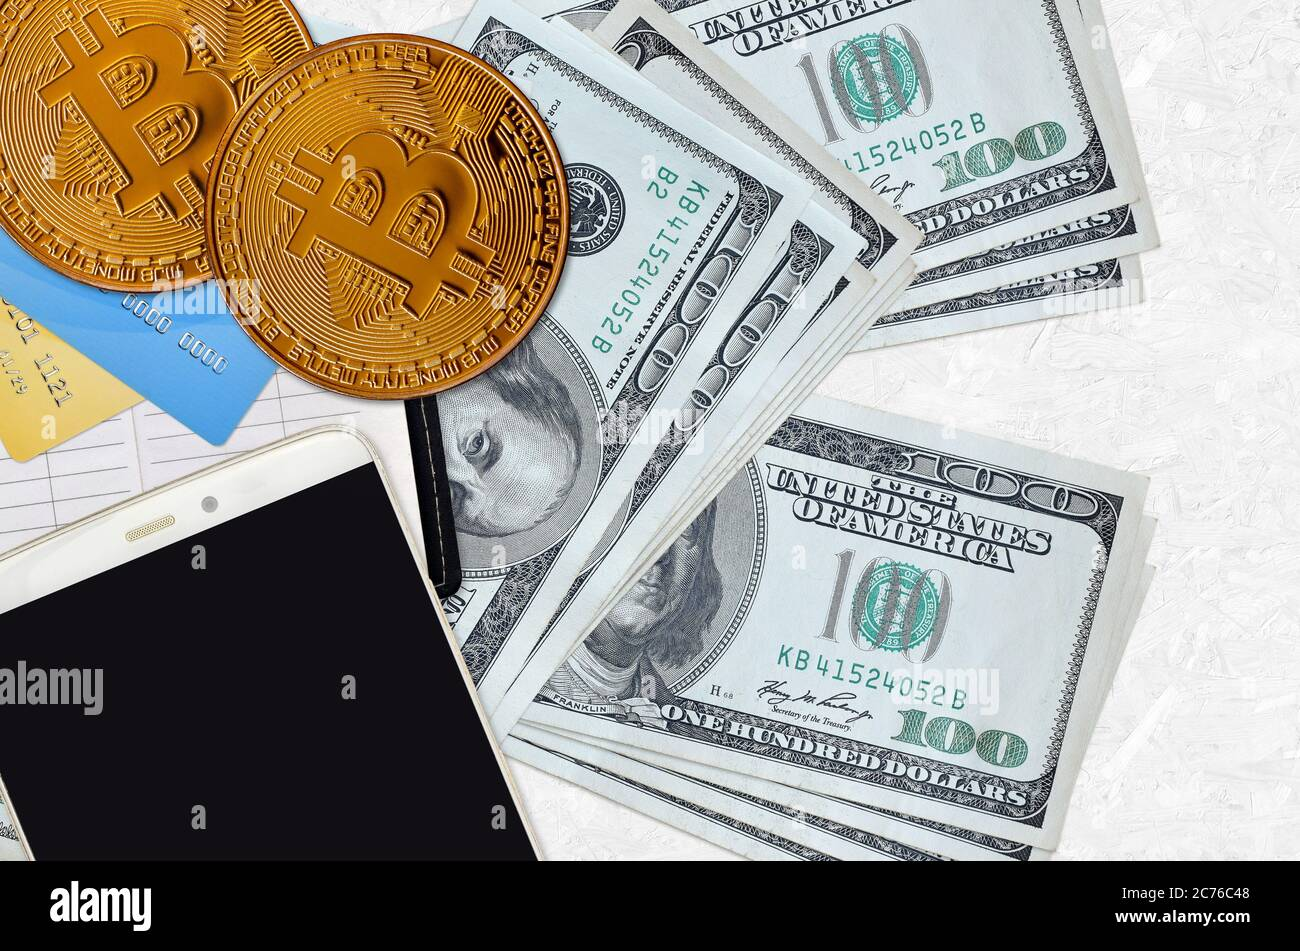 I have 100 bitcoins to dollars binary options strategy key indicators for asia